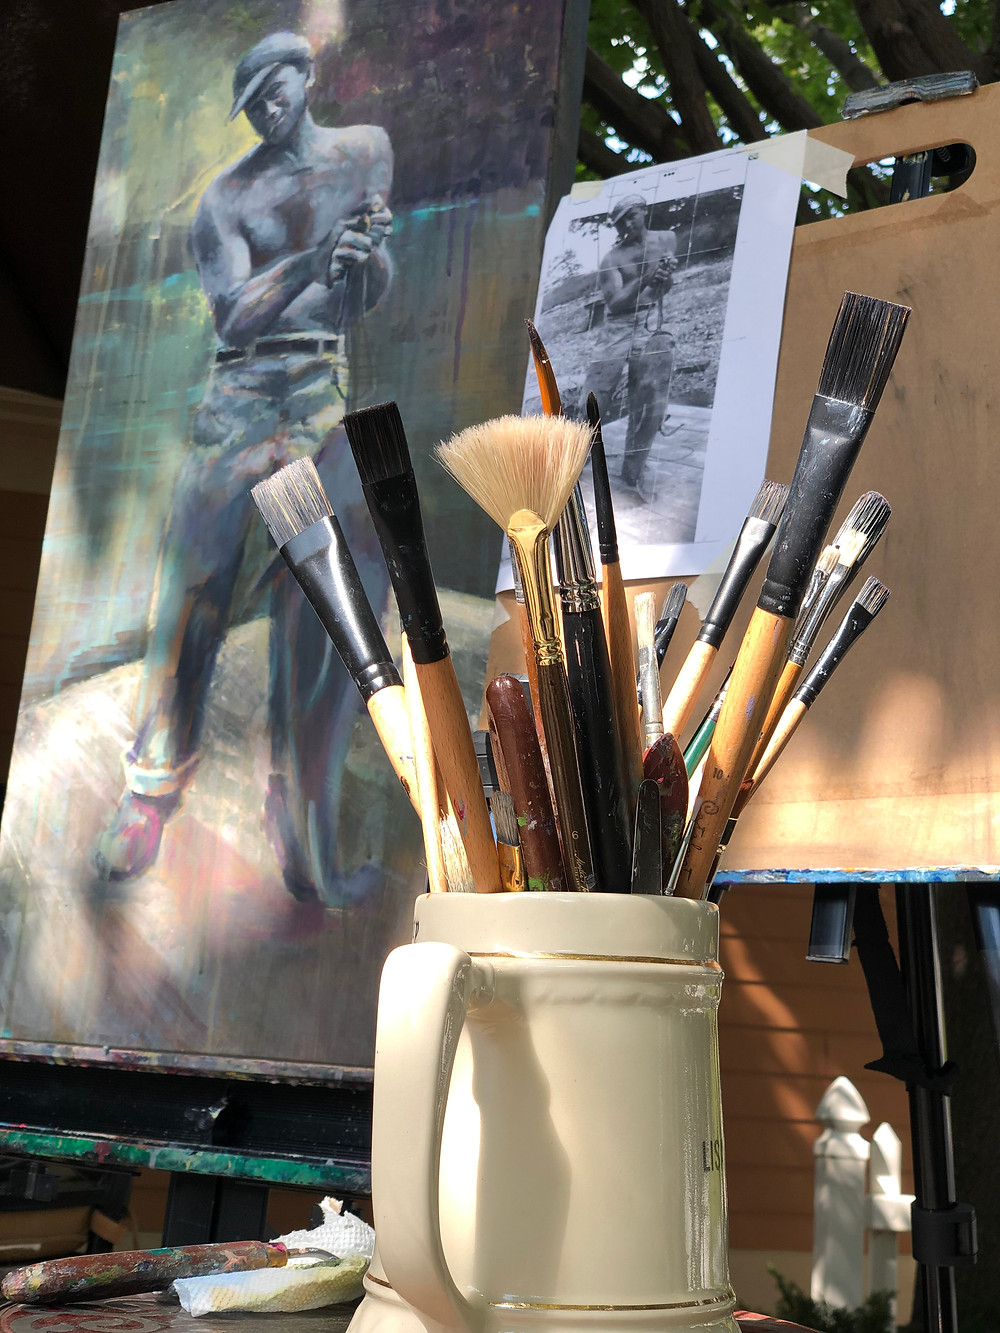 painting and paintbrushes in dappled sunlight